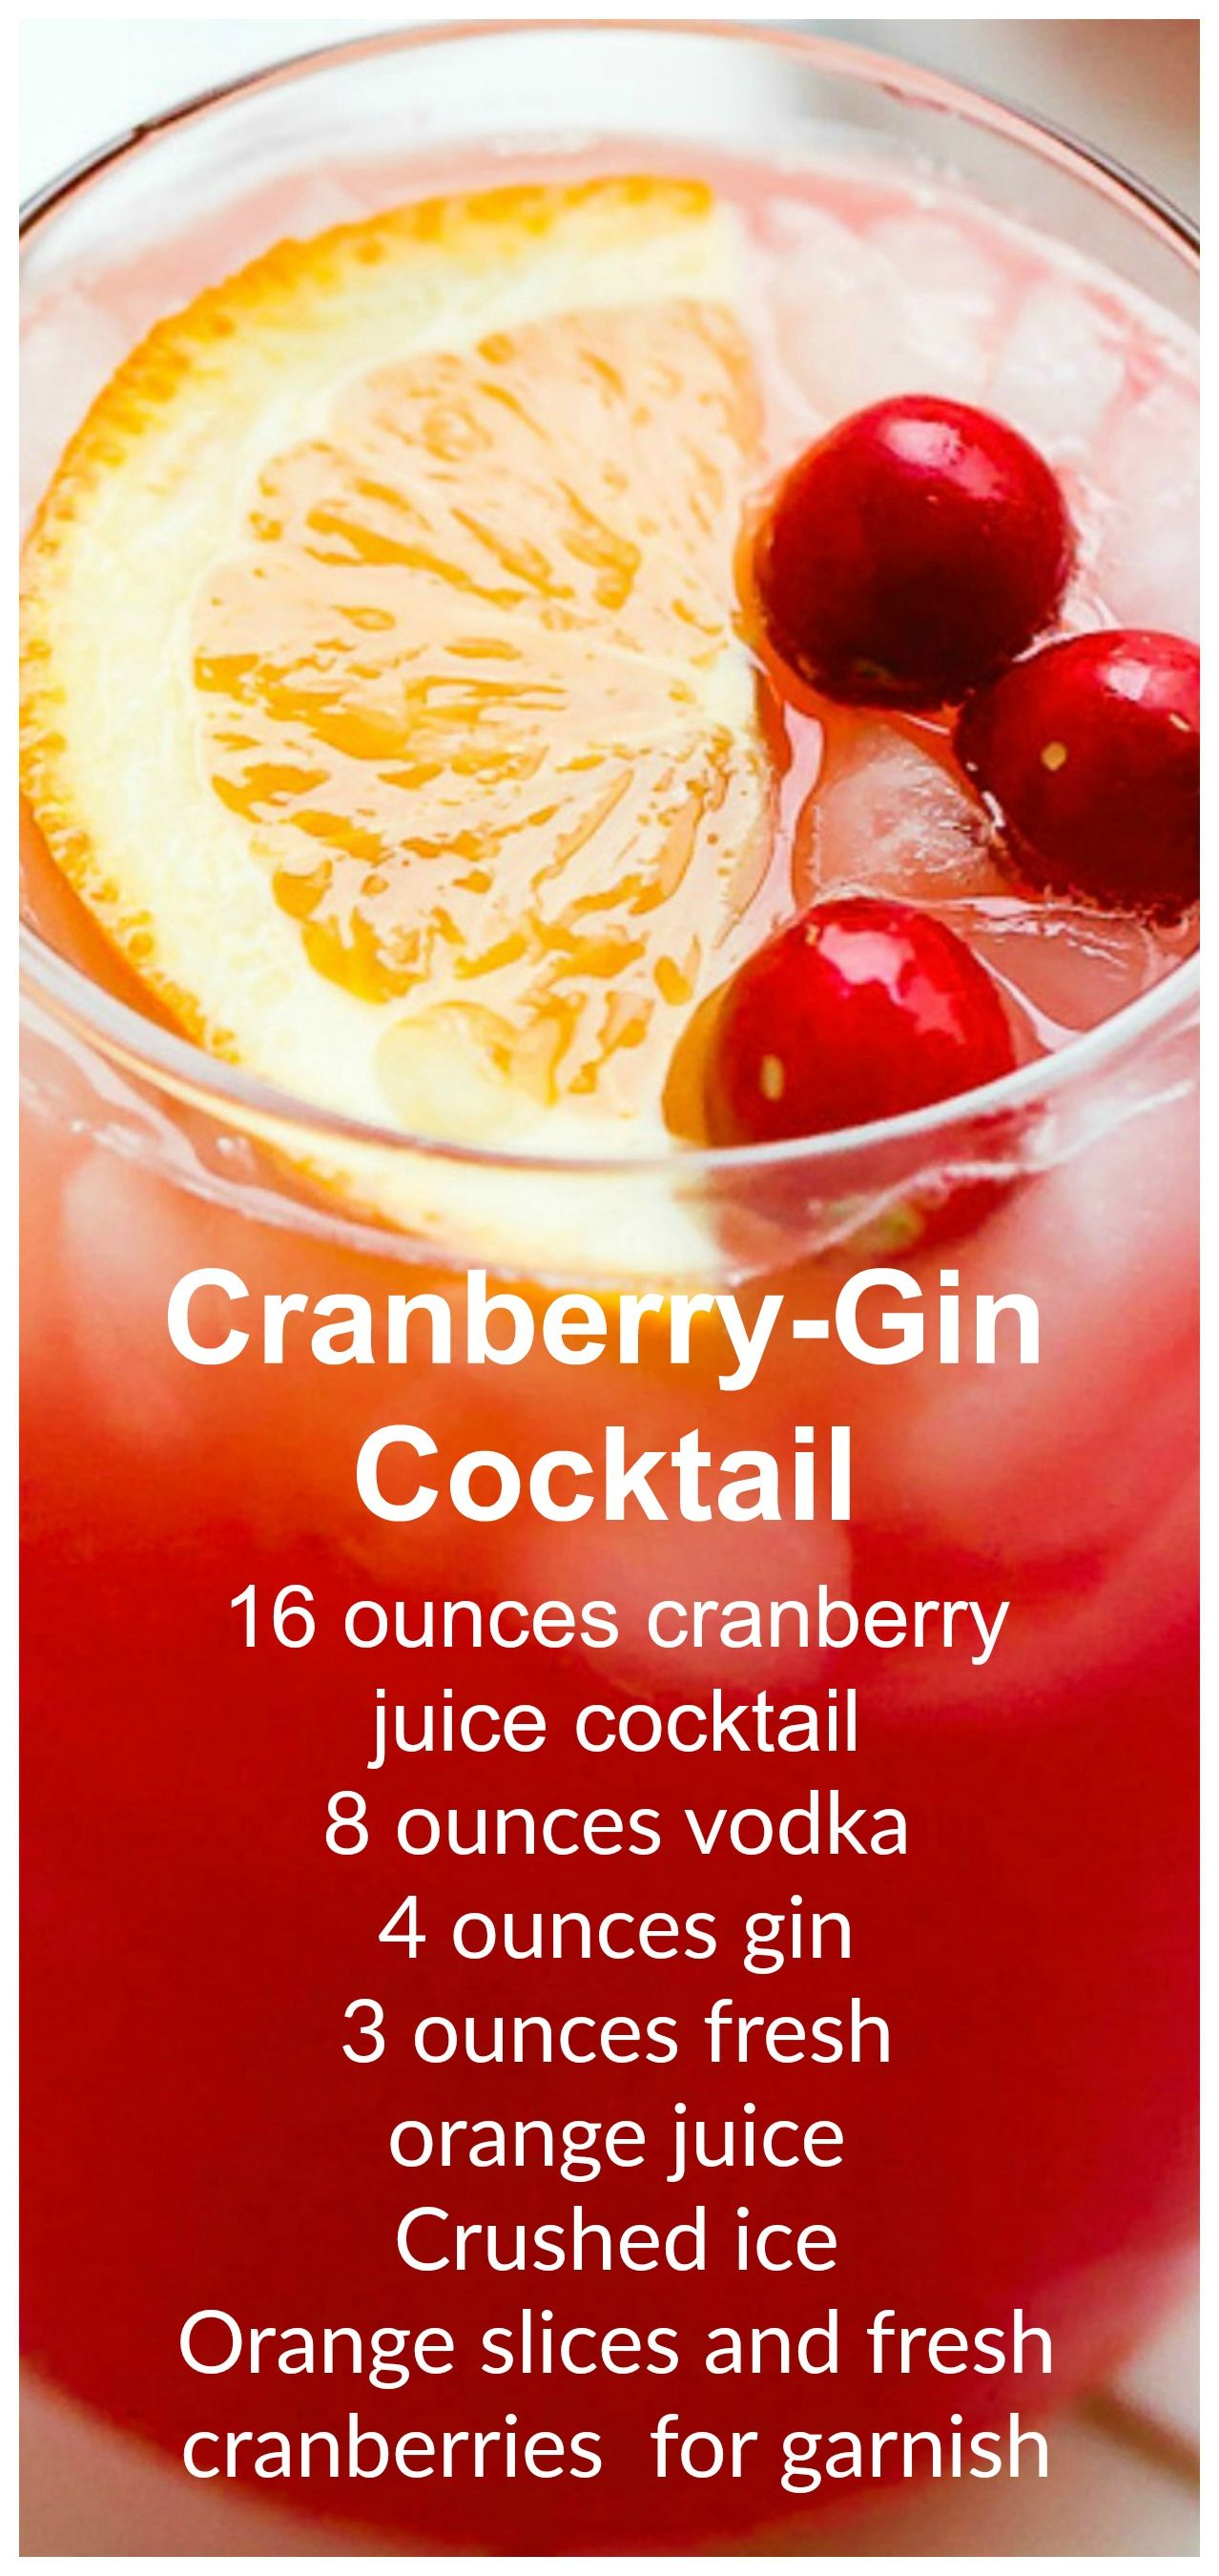 Cranberry-Gin Cocktail #cocktaildrinks